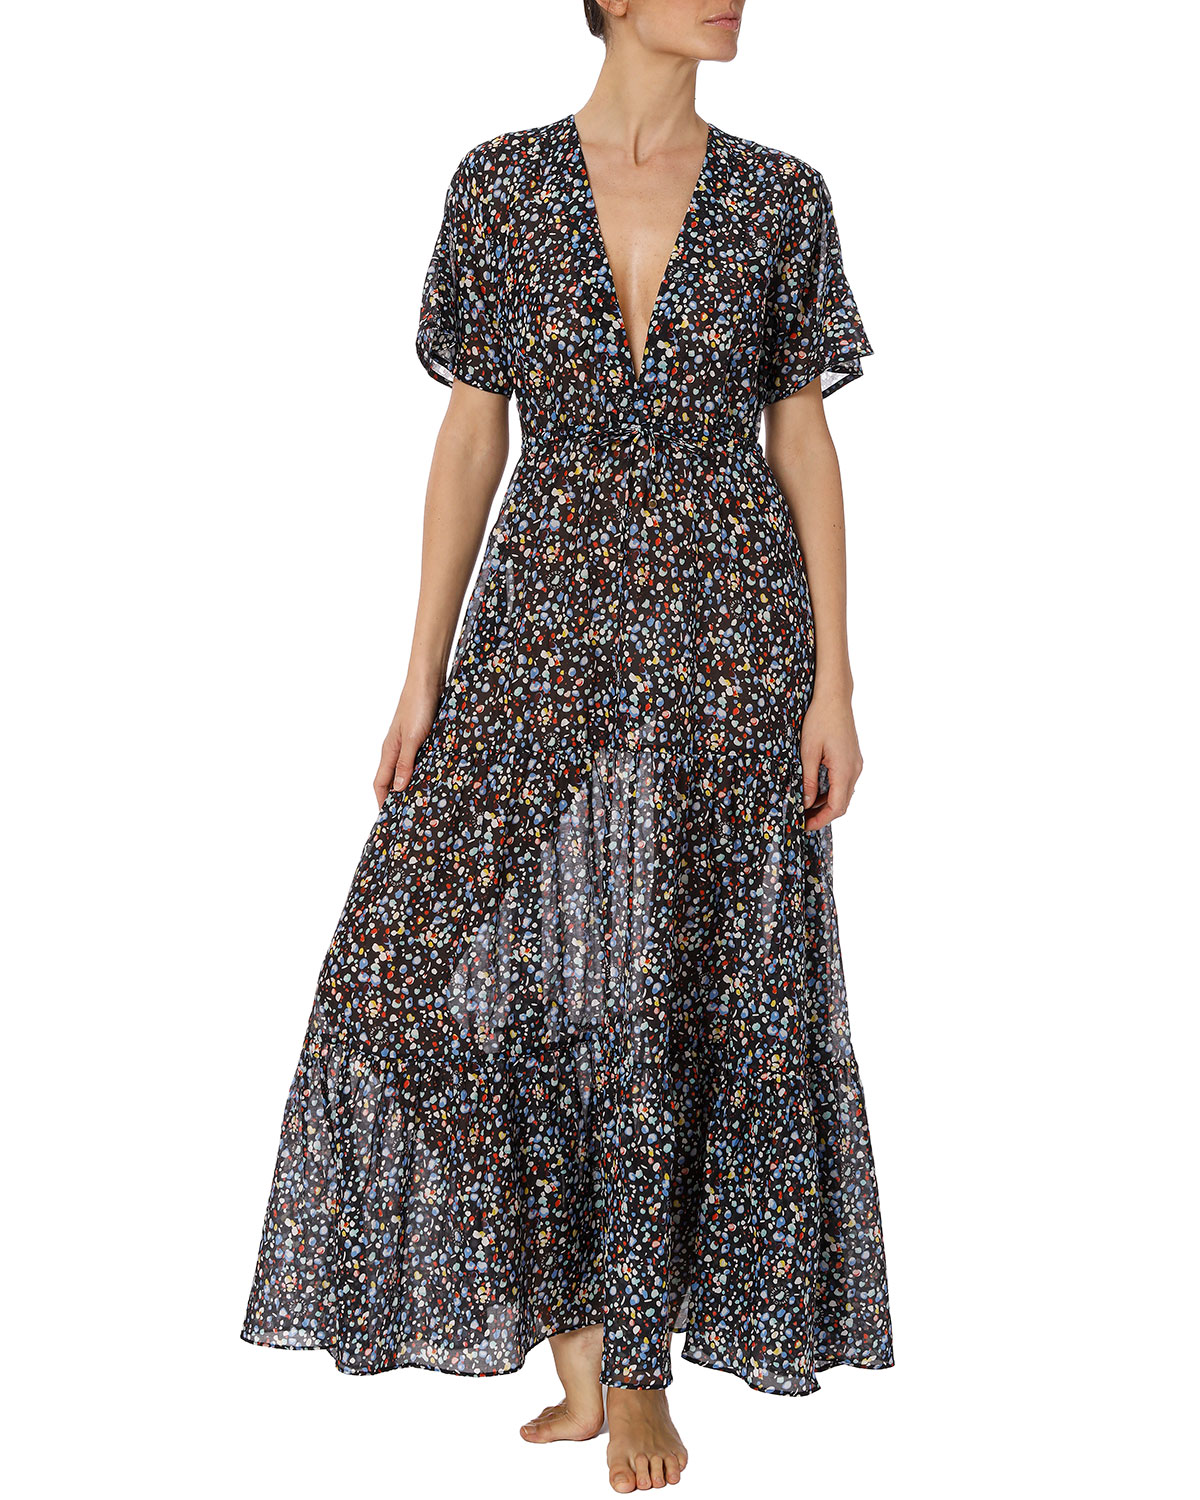 Stella Mccartney Dress PEBBLE-PRINT CUTOUT LONG COVERUP DRESS